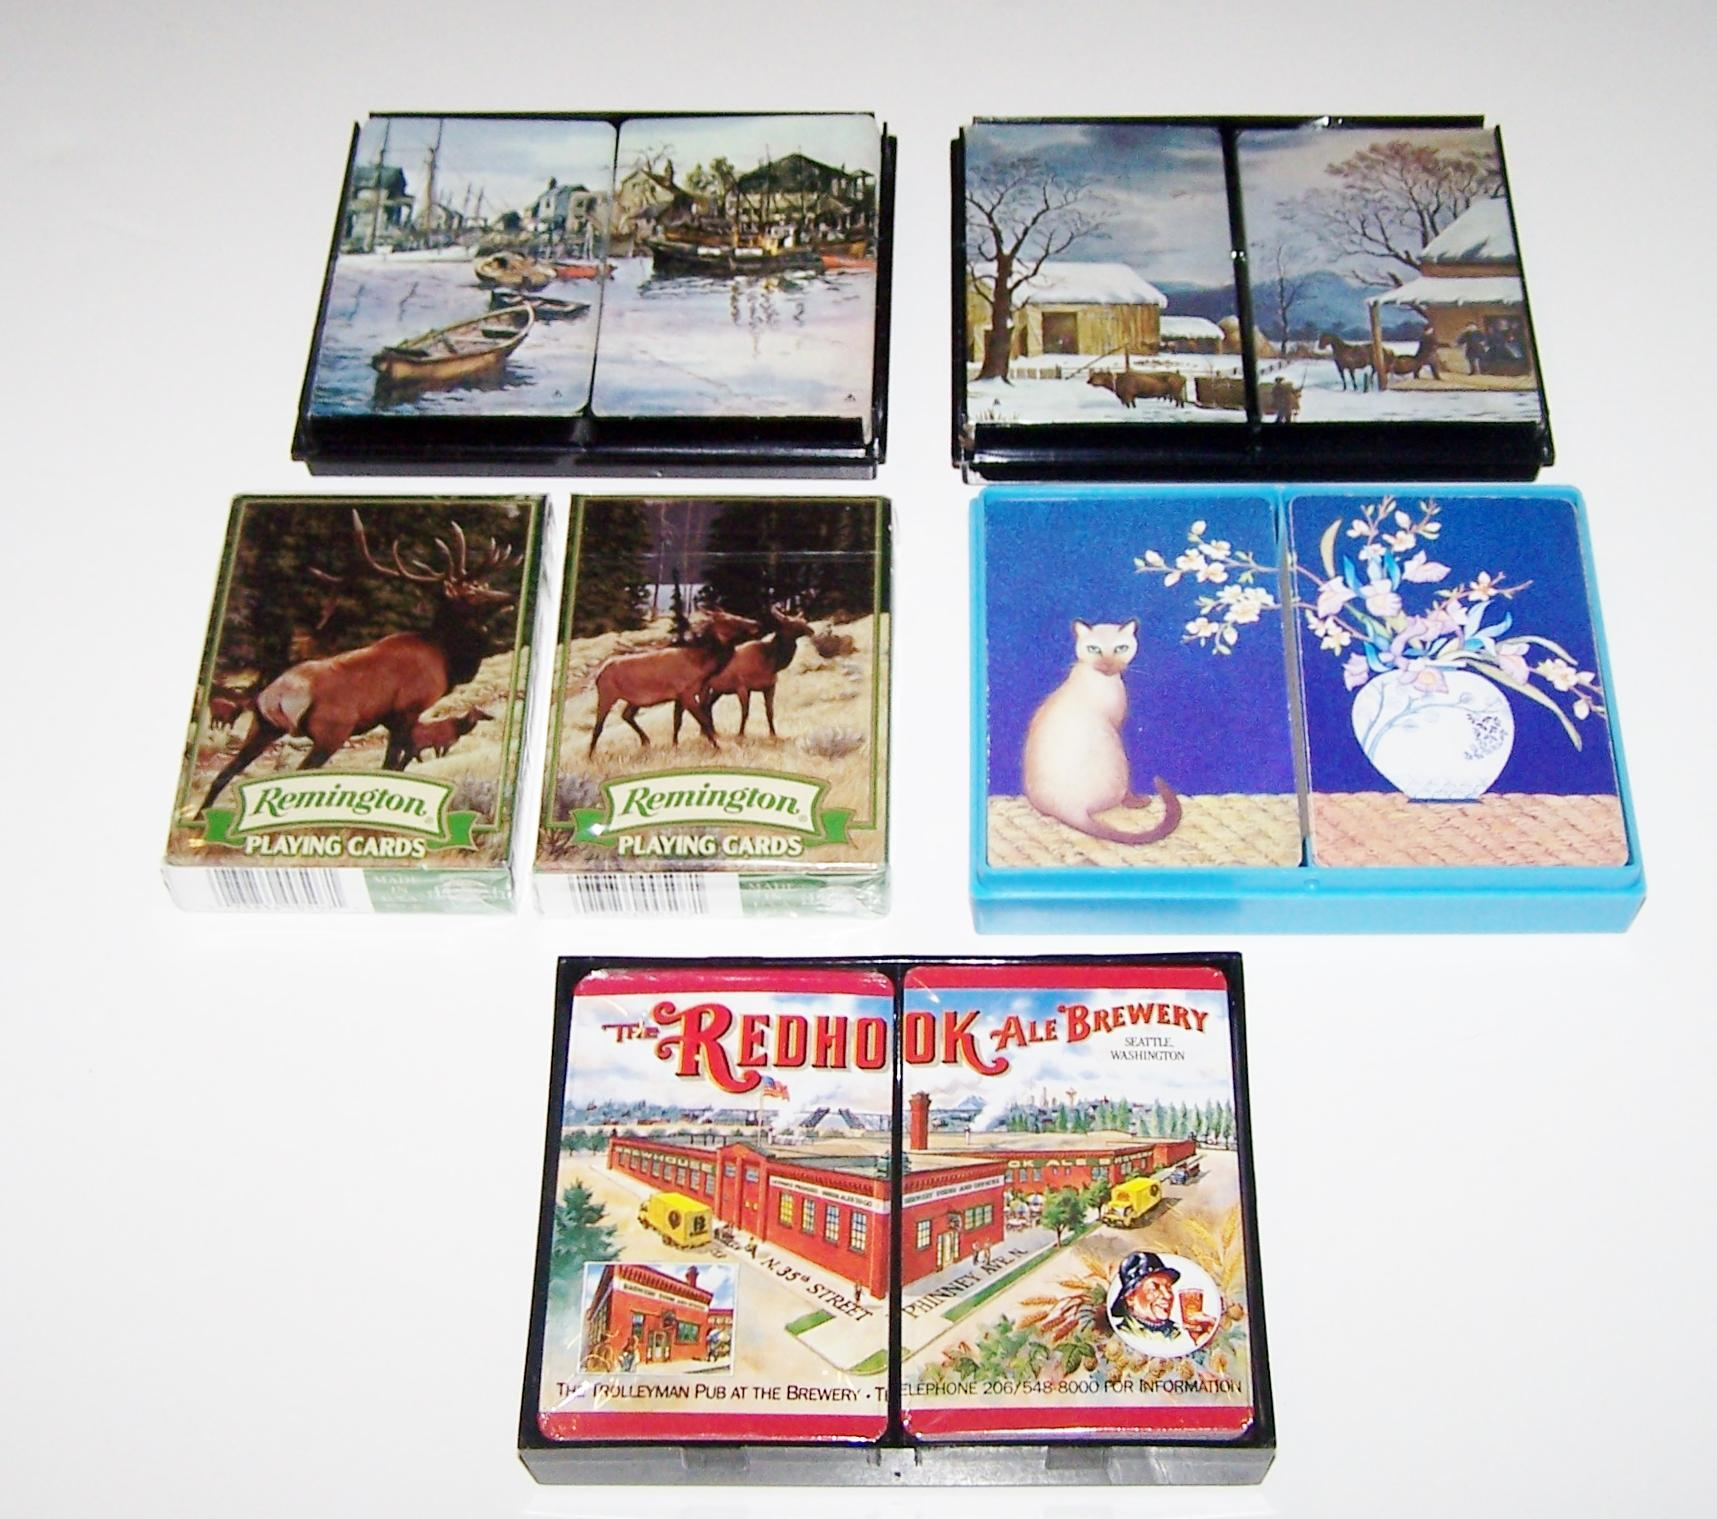 "5 Double Decks ""Put Together"" Playing Cards $15 ea: (i) Hoyle (""Barrymore""); (ii) Brown & Bigelow (""Winter Scene""); (ii) USPC (""Remington""); (iv) Hoyle (""Cat and Vase""); and (v) Gemaco (""Red Hook Brewery"")"